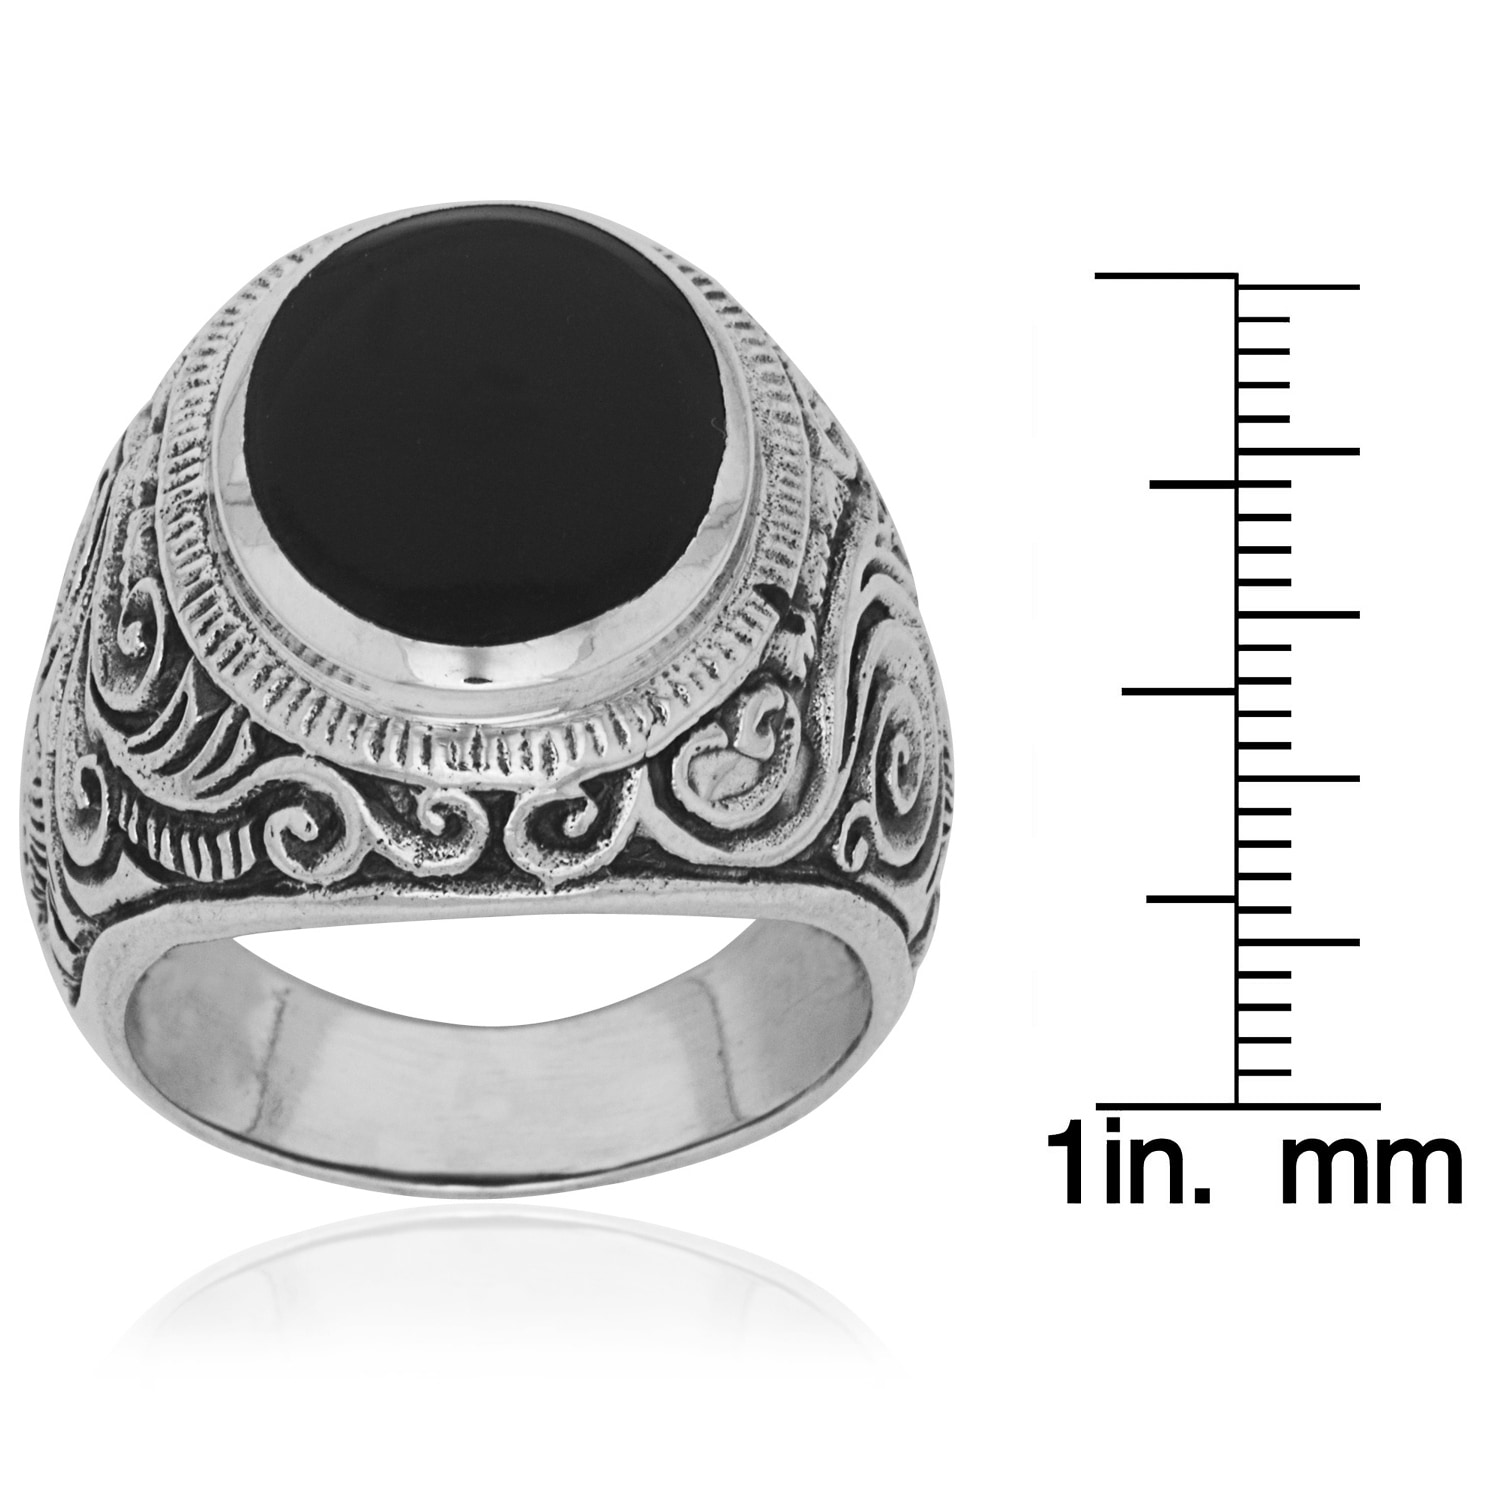 9ef913cd0 Shop Men's Sterling Silver and Black Onyx Scroll Ring - Free ...